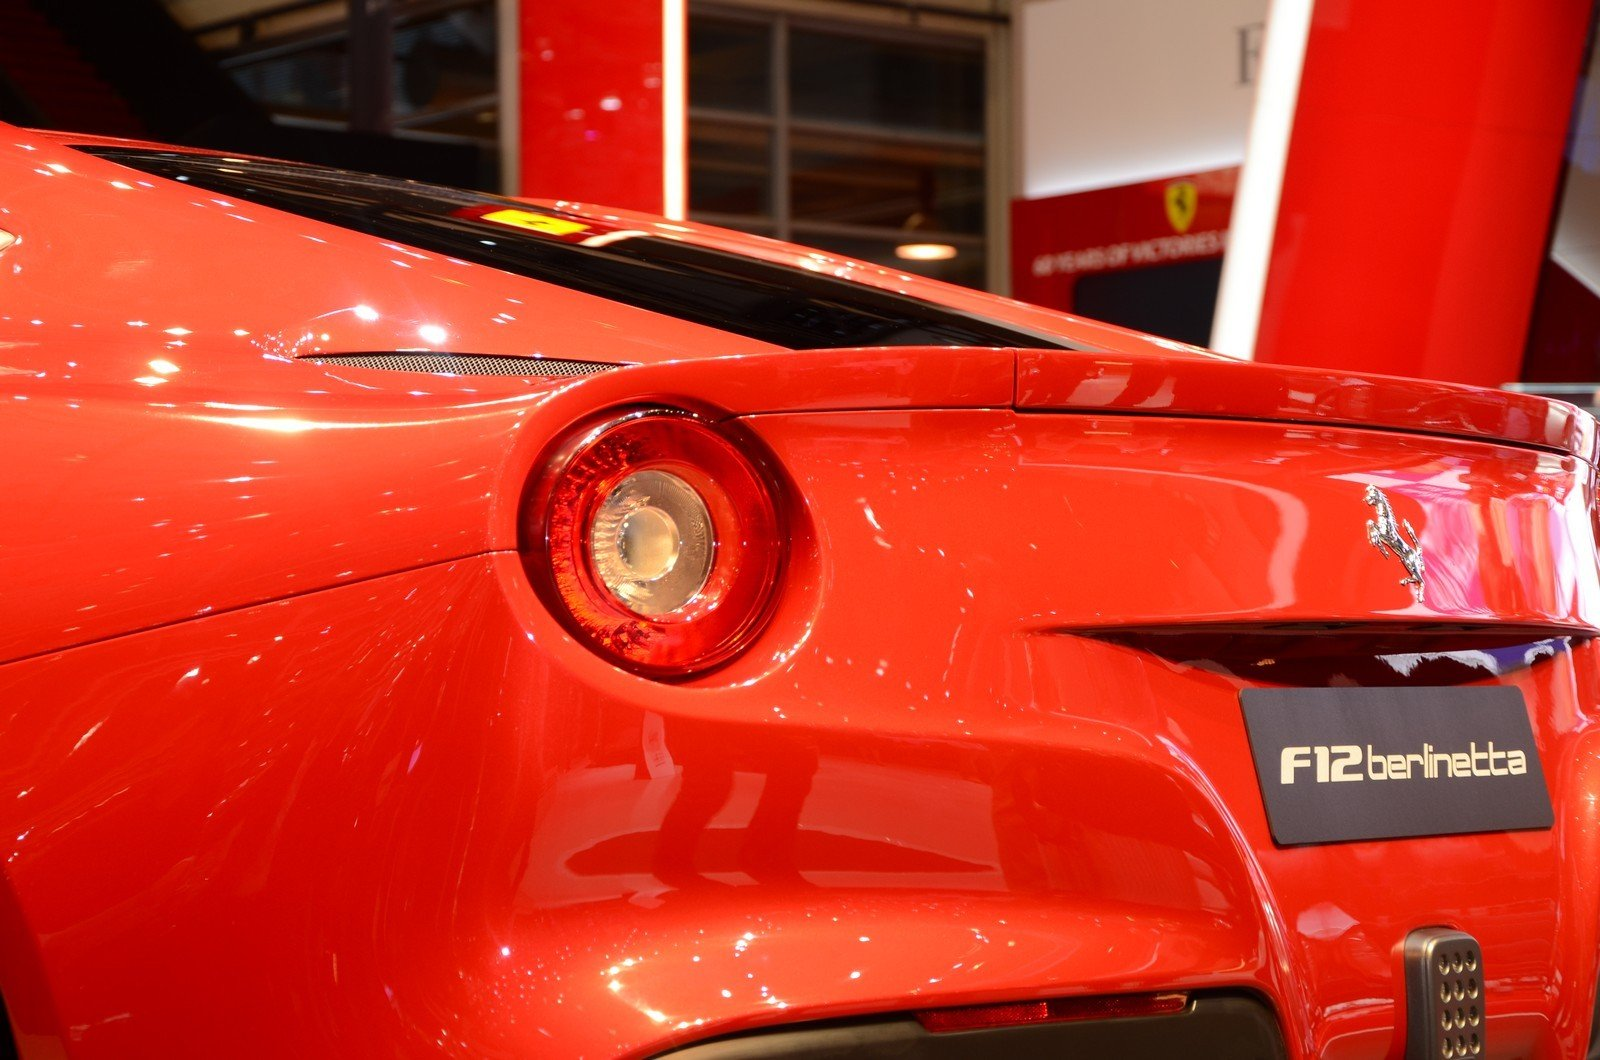 2013 ferrari f12 berlinetta picture 441819 car review top speed. Black Bedroom Furniture Sets. Home Design Ideas